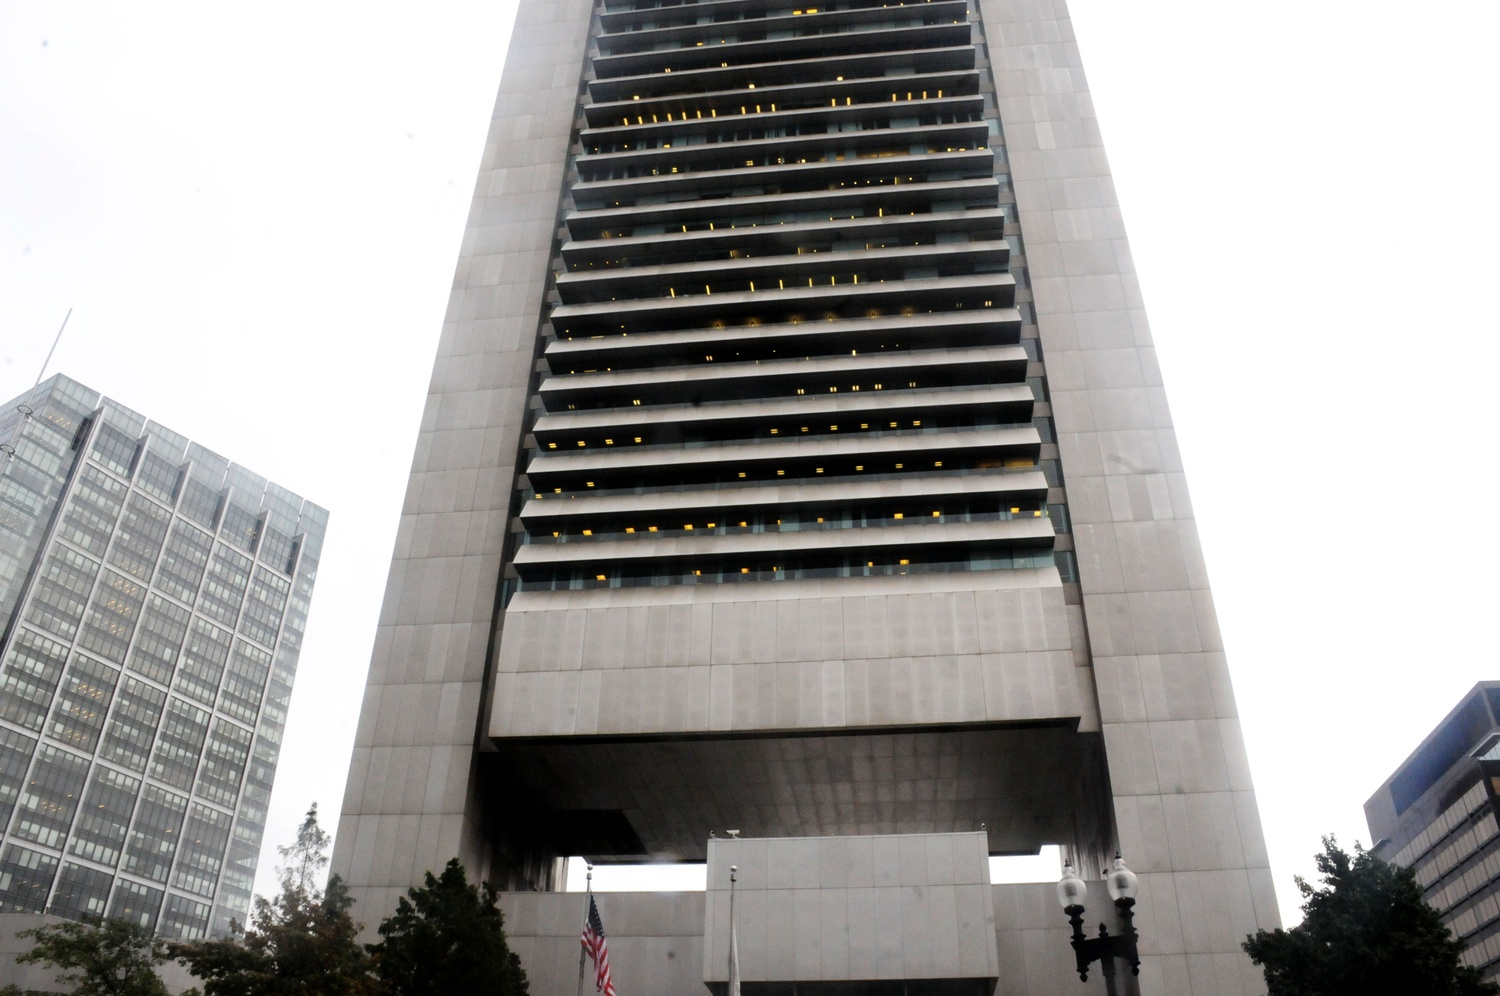 Harvard Management Company is housed in the Boston Federal Reserve Building.